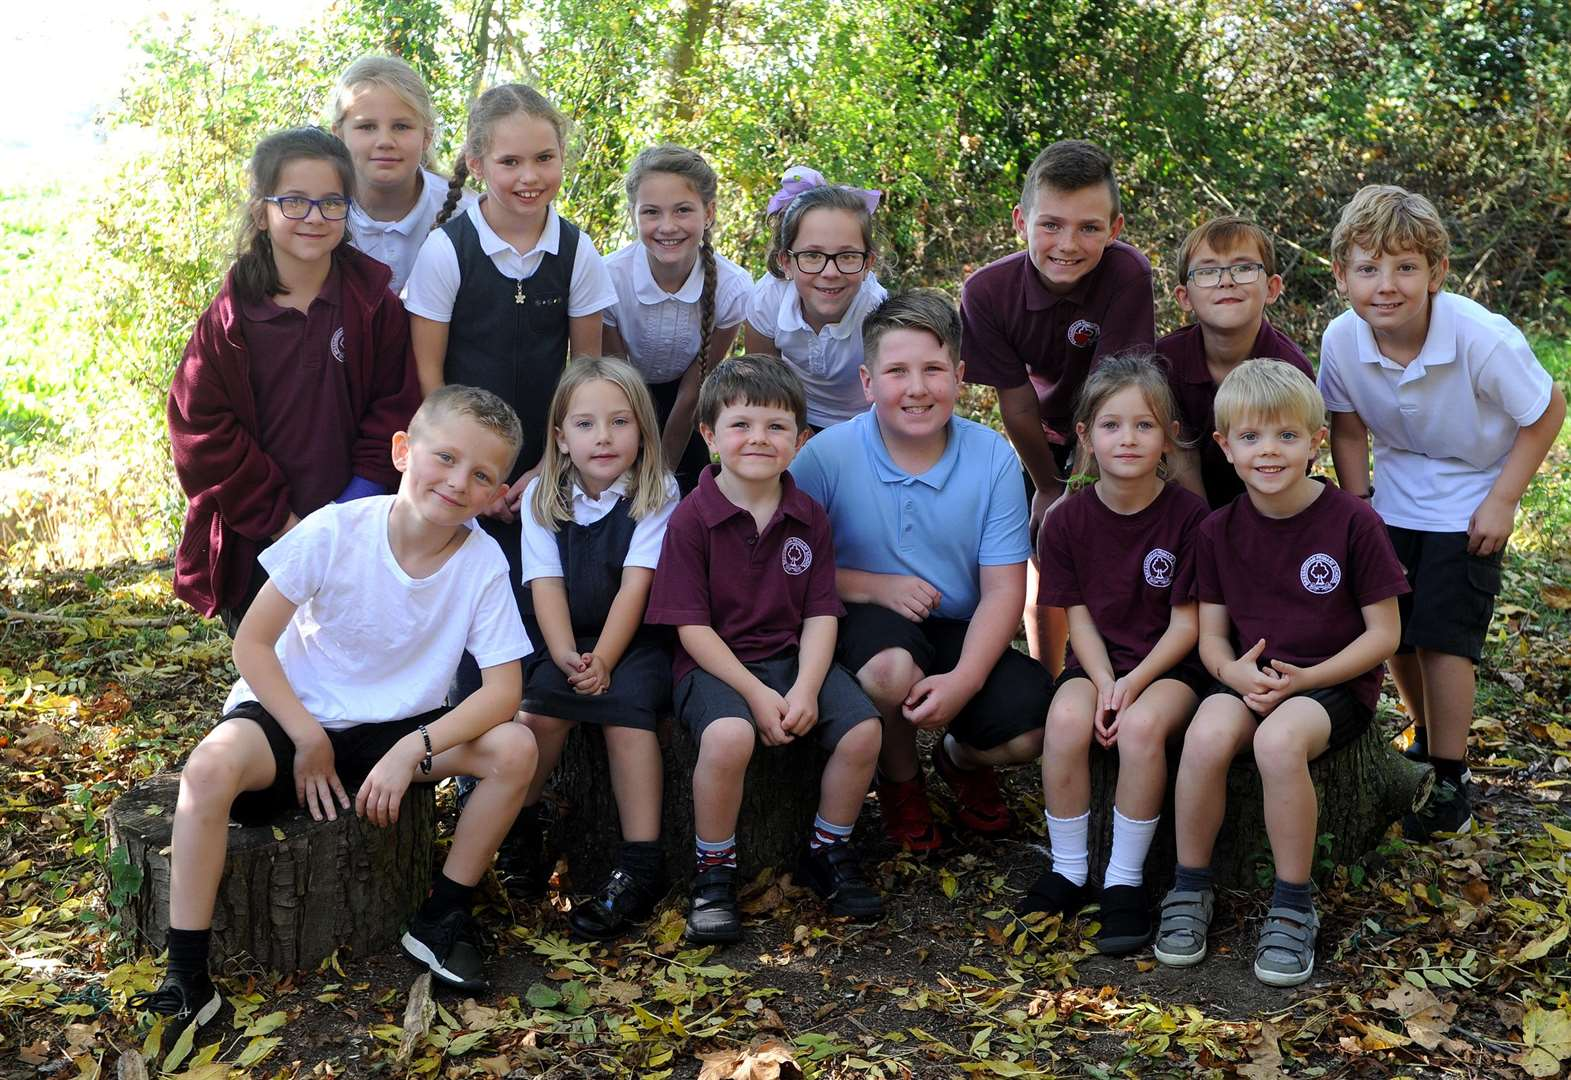 Bressingham Primary School is set to expand its forest school area